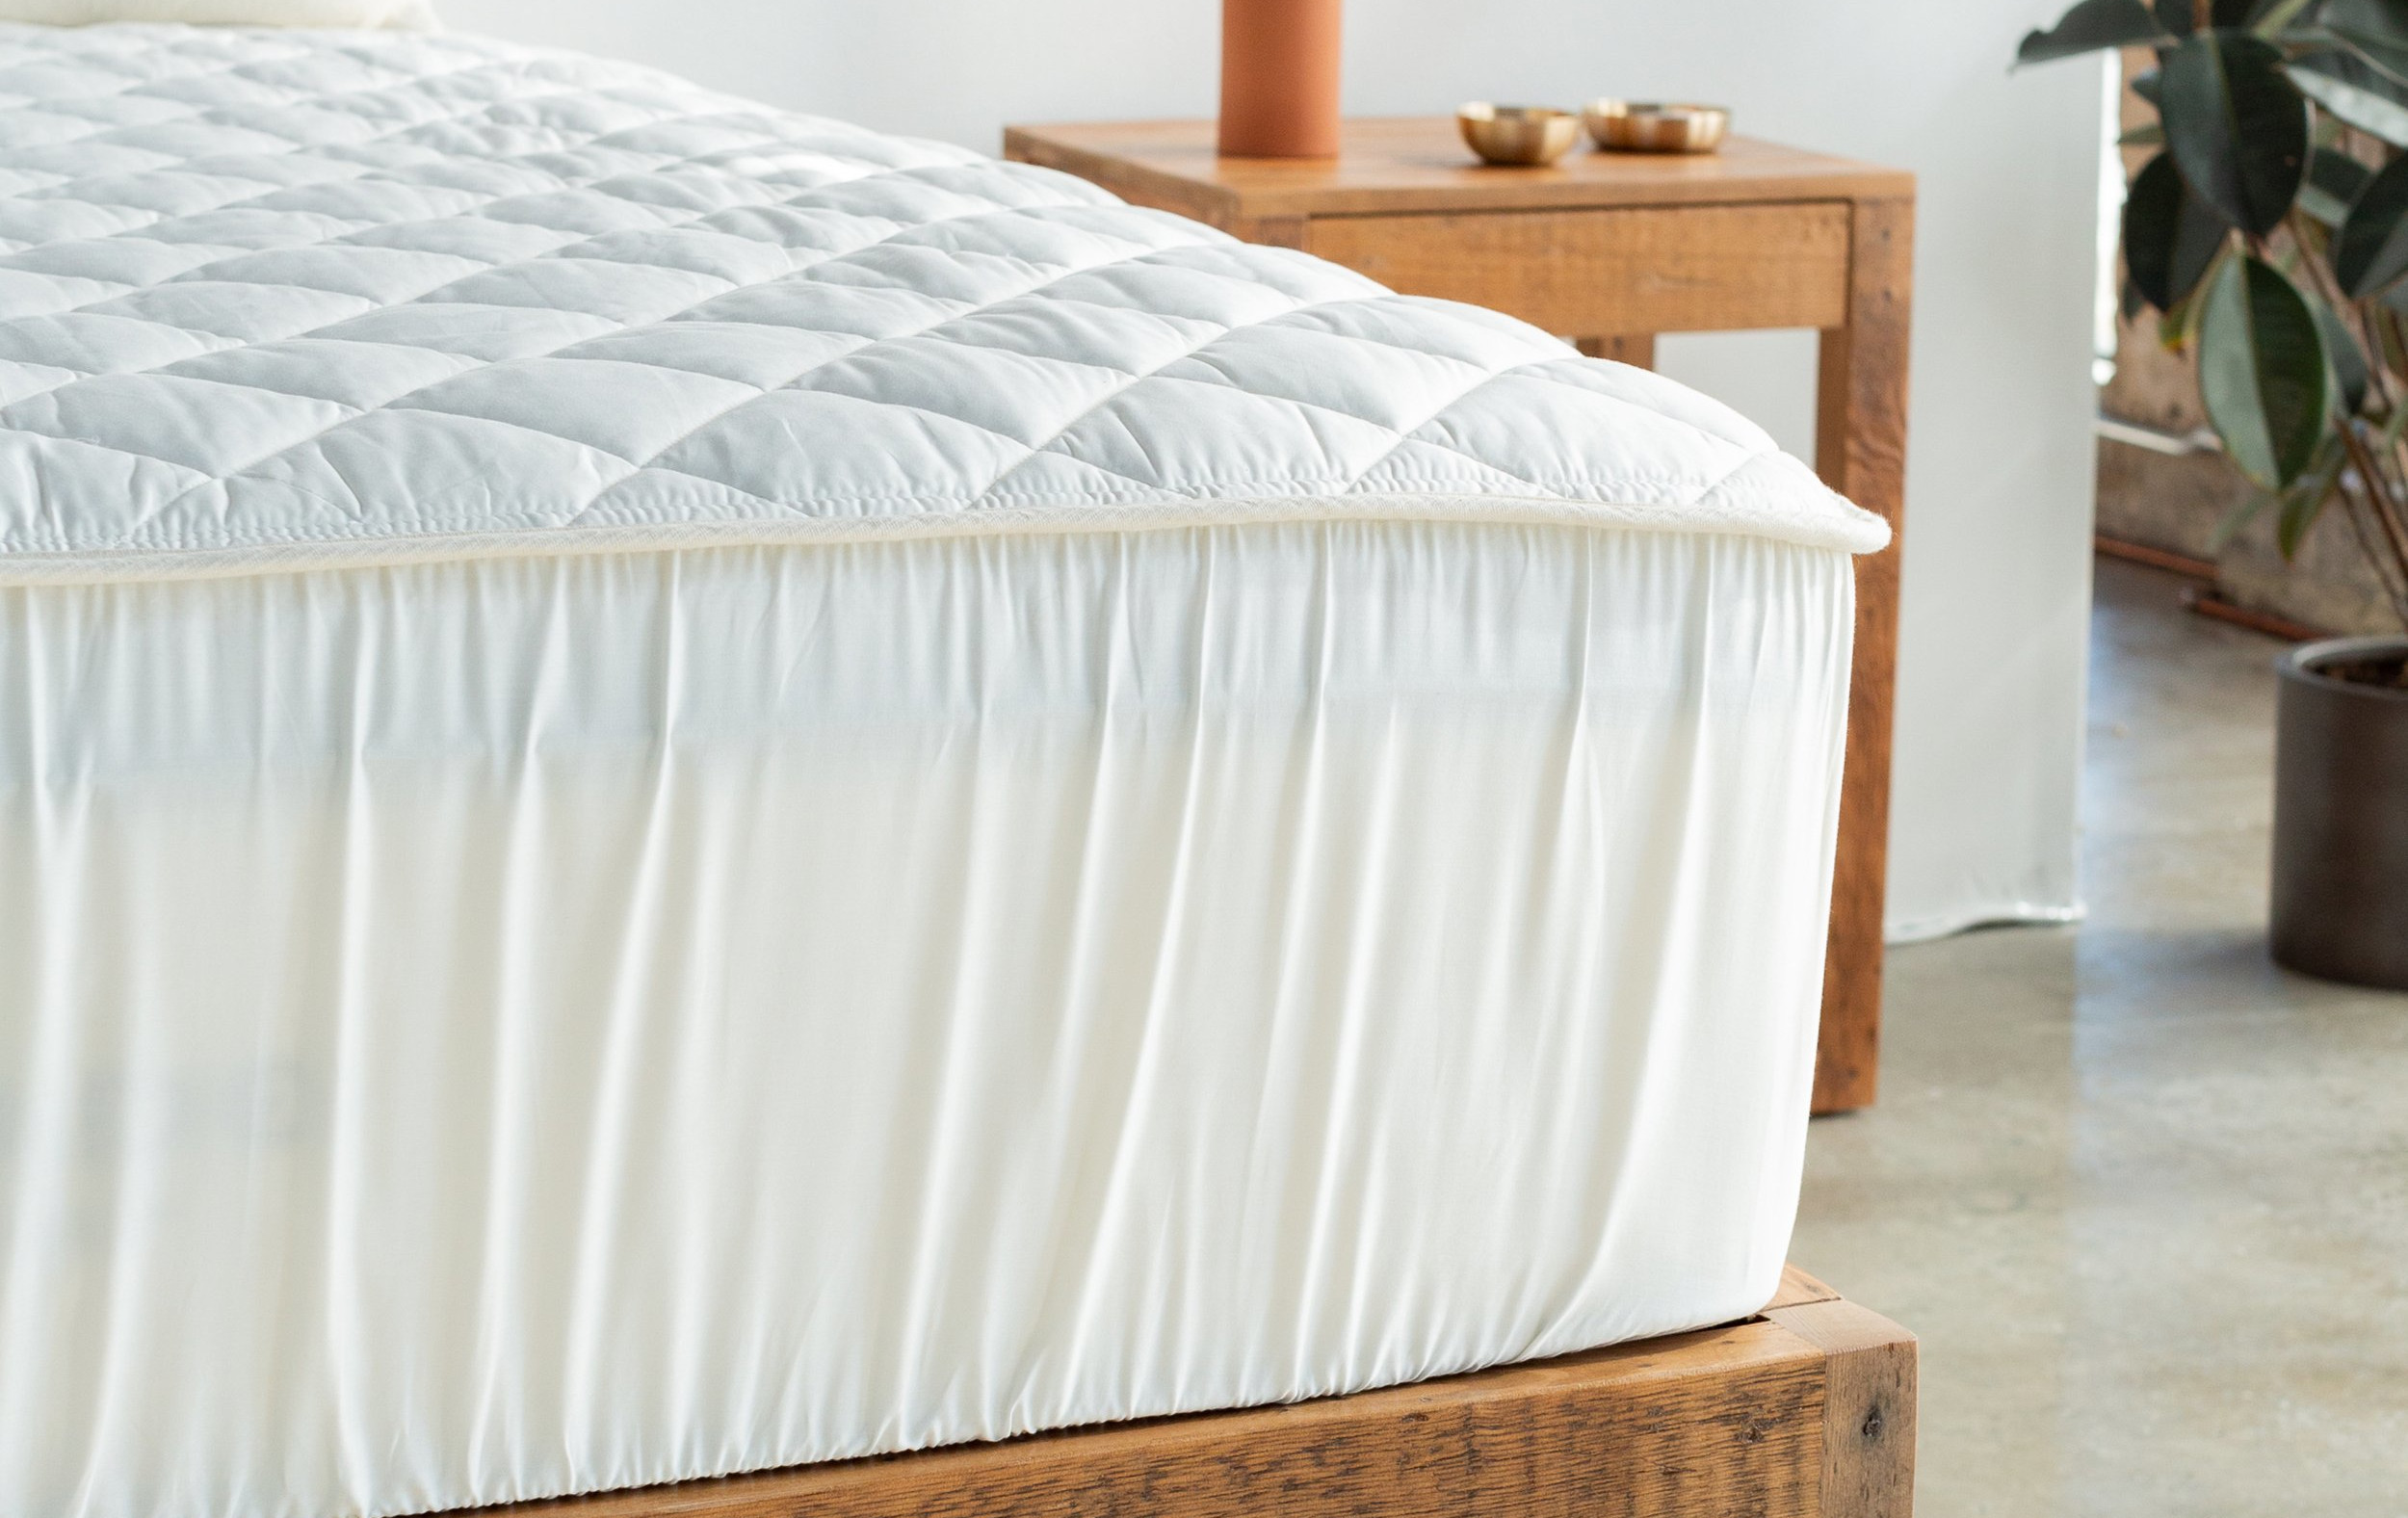 made in american mattress protector plastic free